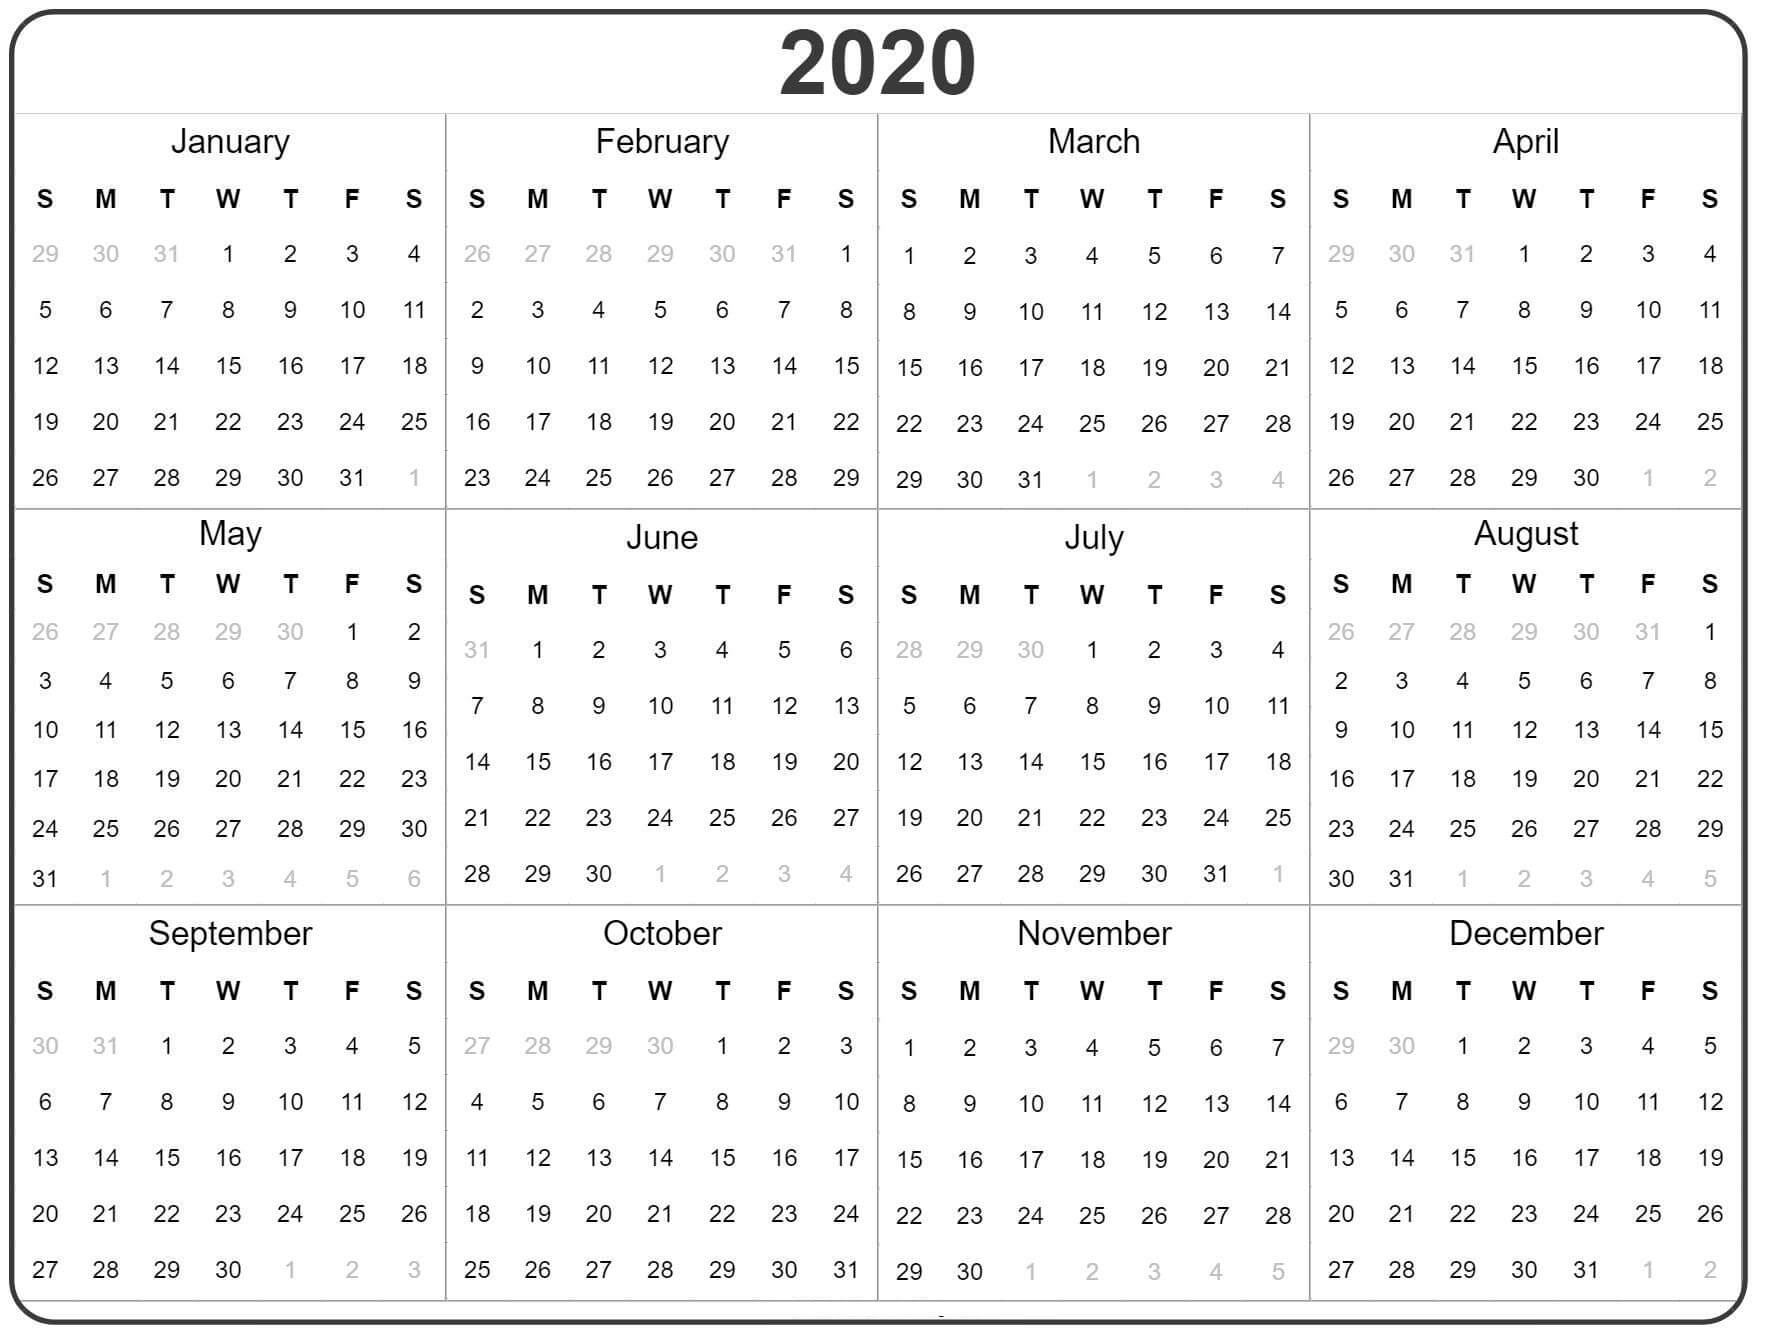 Free Yearly Calendar 2020 With Notes - 2019 Calendars For for Year At A Glance 2020 Calendar